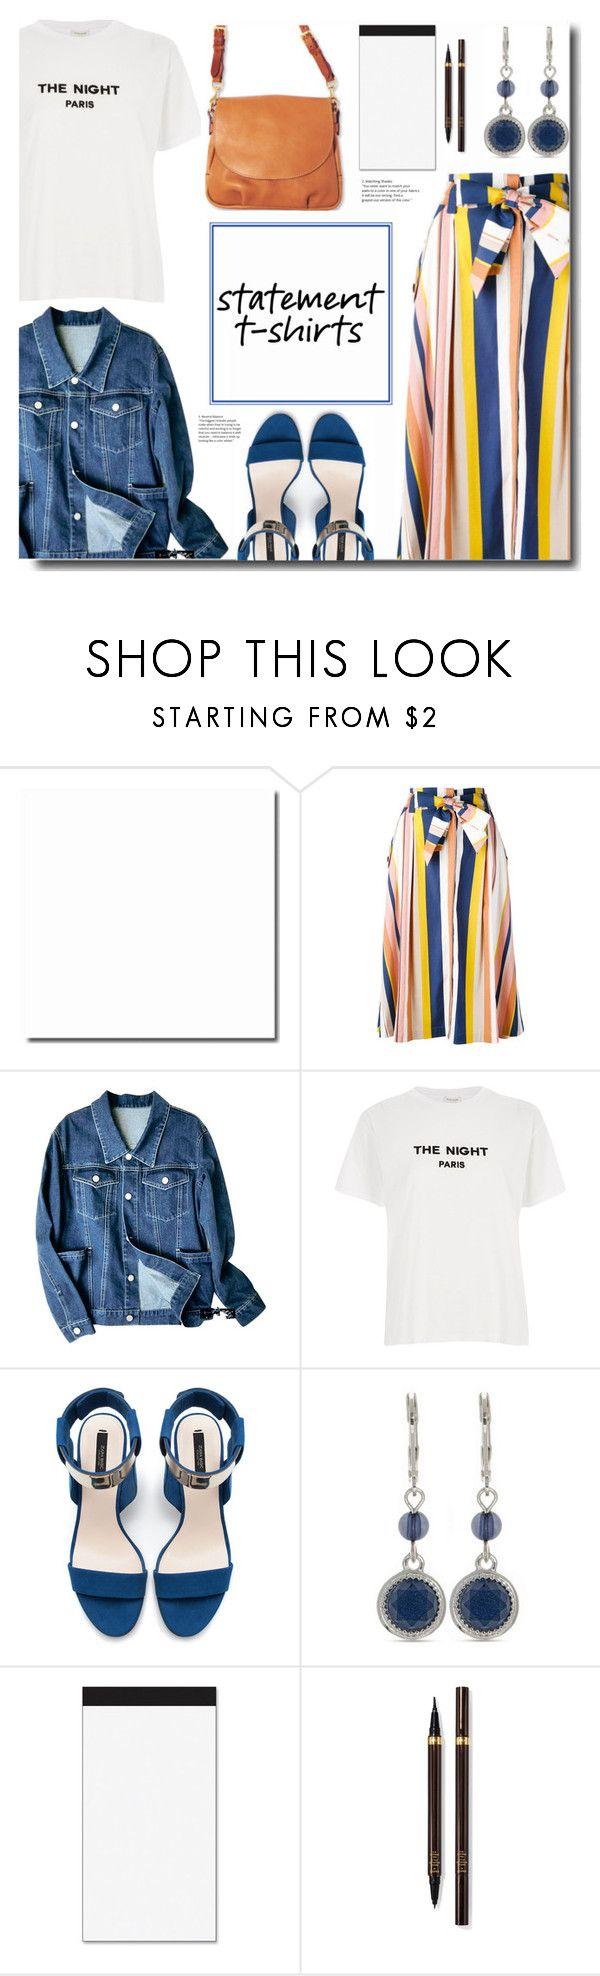 """Say It Loud: Slogan T-Shirts"" by kts-desilva ❤ liked on Polyvore featuring Tanya Taylor, River Island, Diane Von Furstenberg, Zara, Nine West, AT-A-GLANCE, Tom Ford, slogantshirts and collegetime"